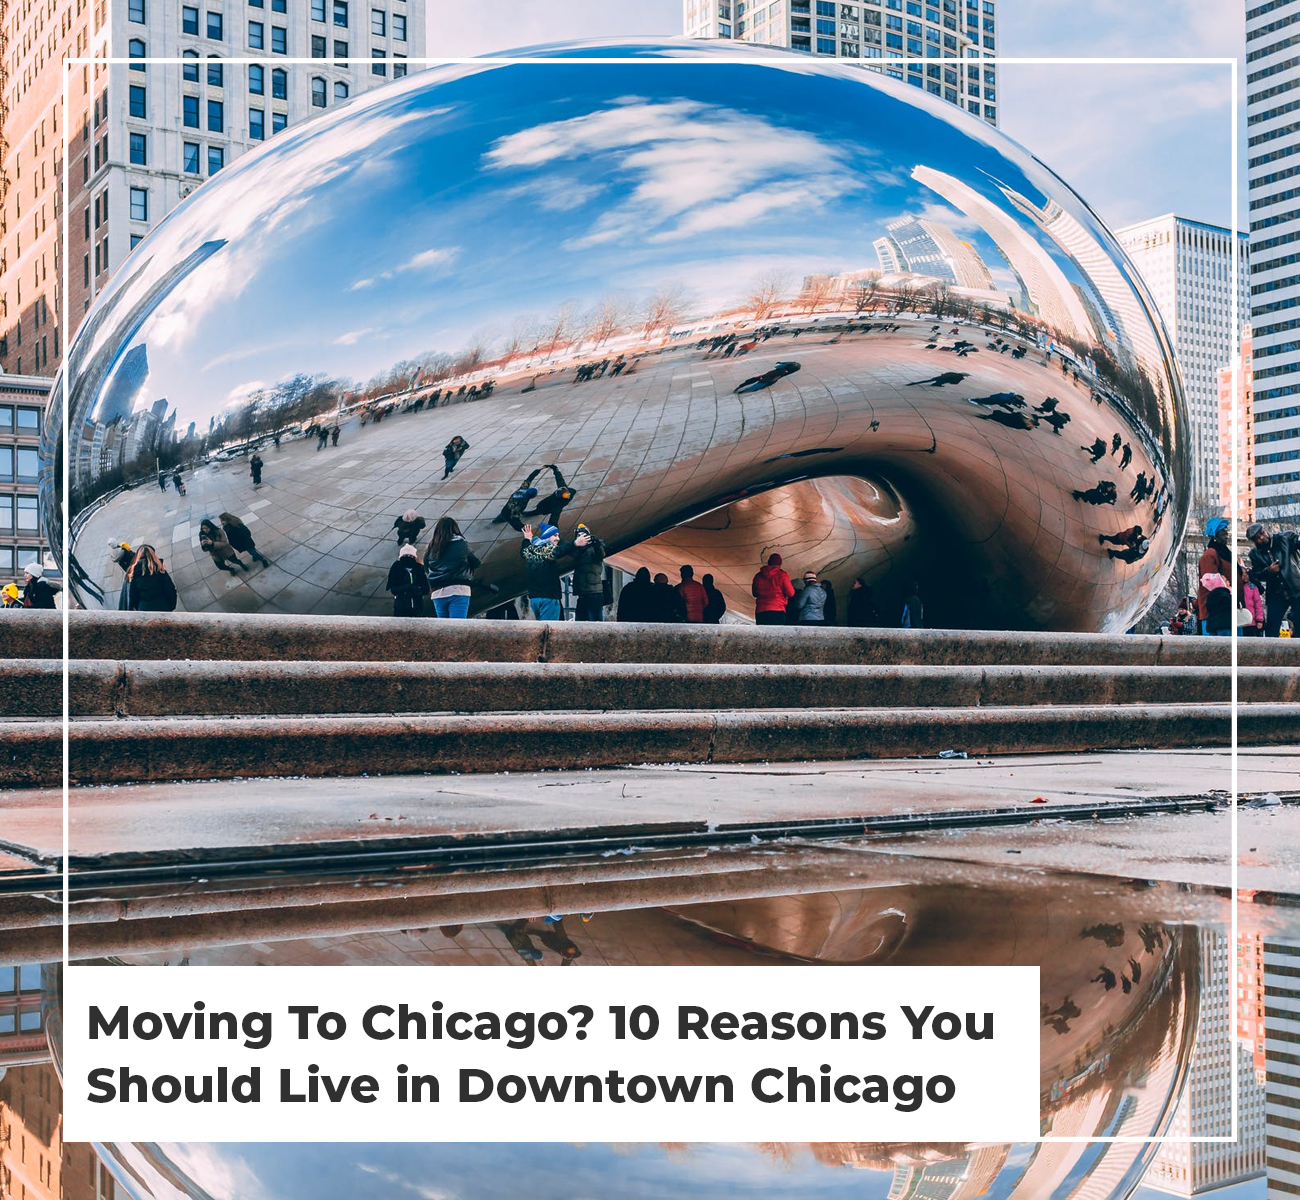 10 Reasons to Live Downtown Chicago